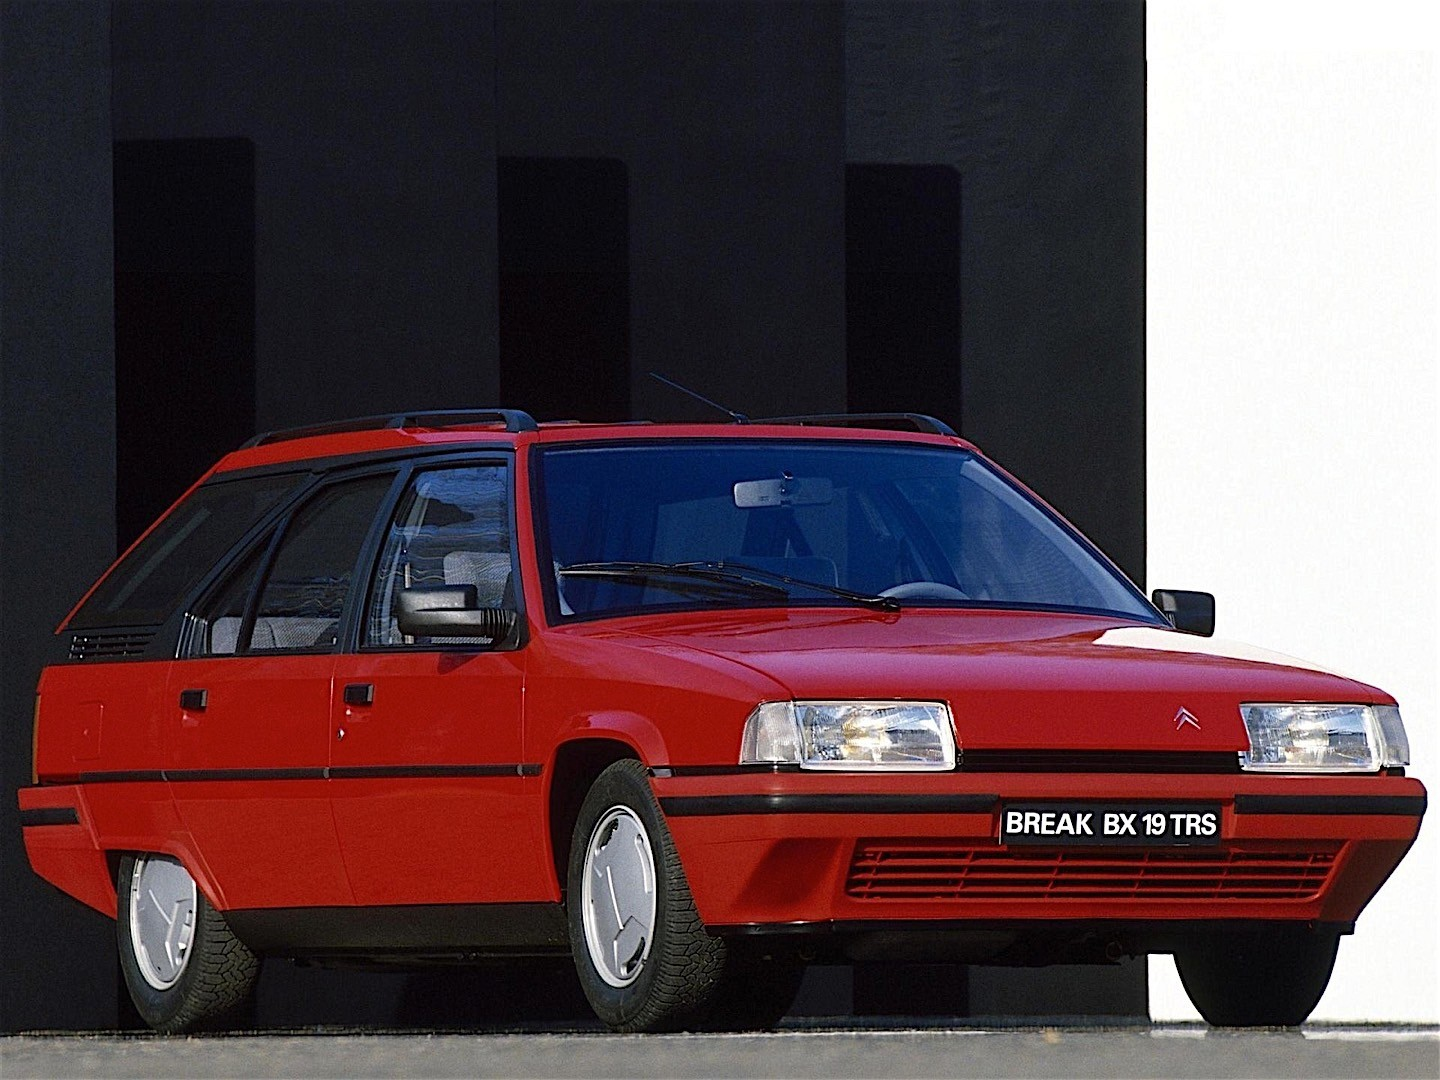 citroen bx break specs 1989 1990 1991 1992 1993 1994 autoevolution. Black Bedroom Furniture Sets. Home Design Ideas